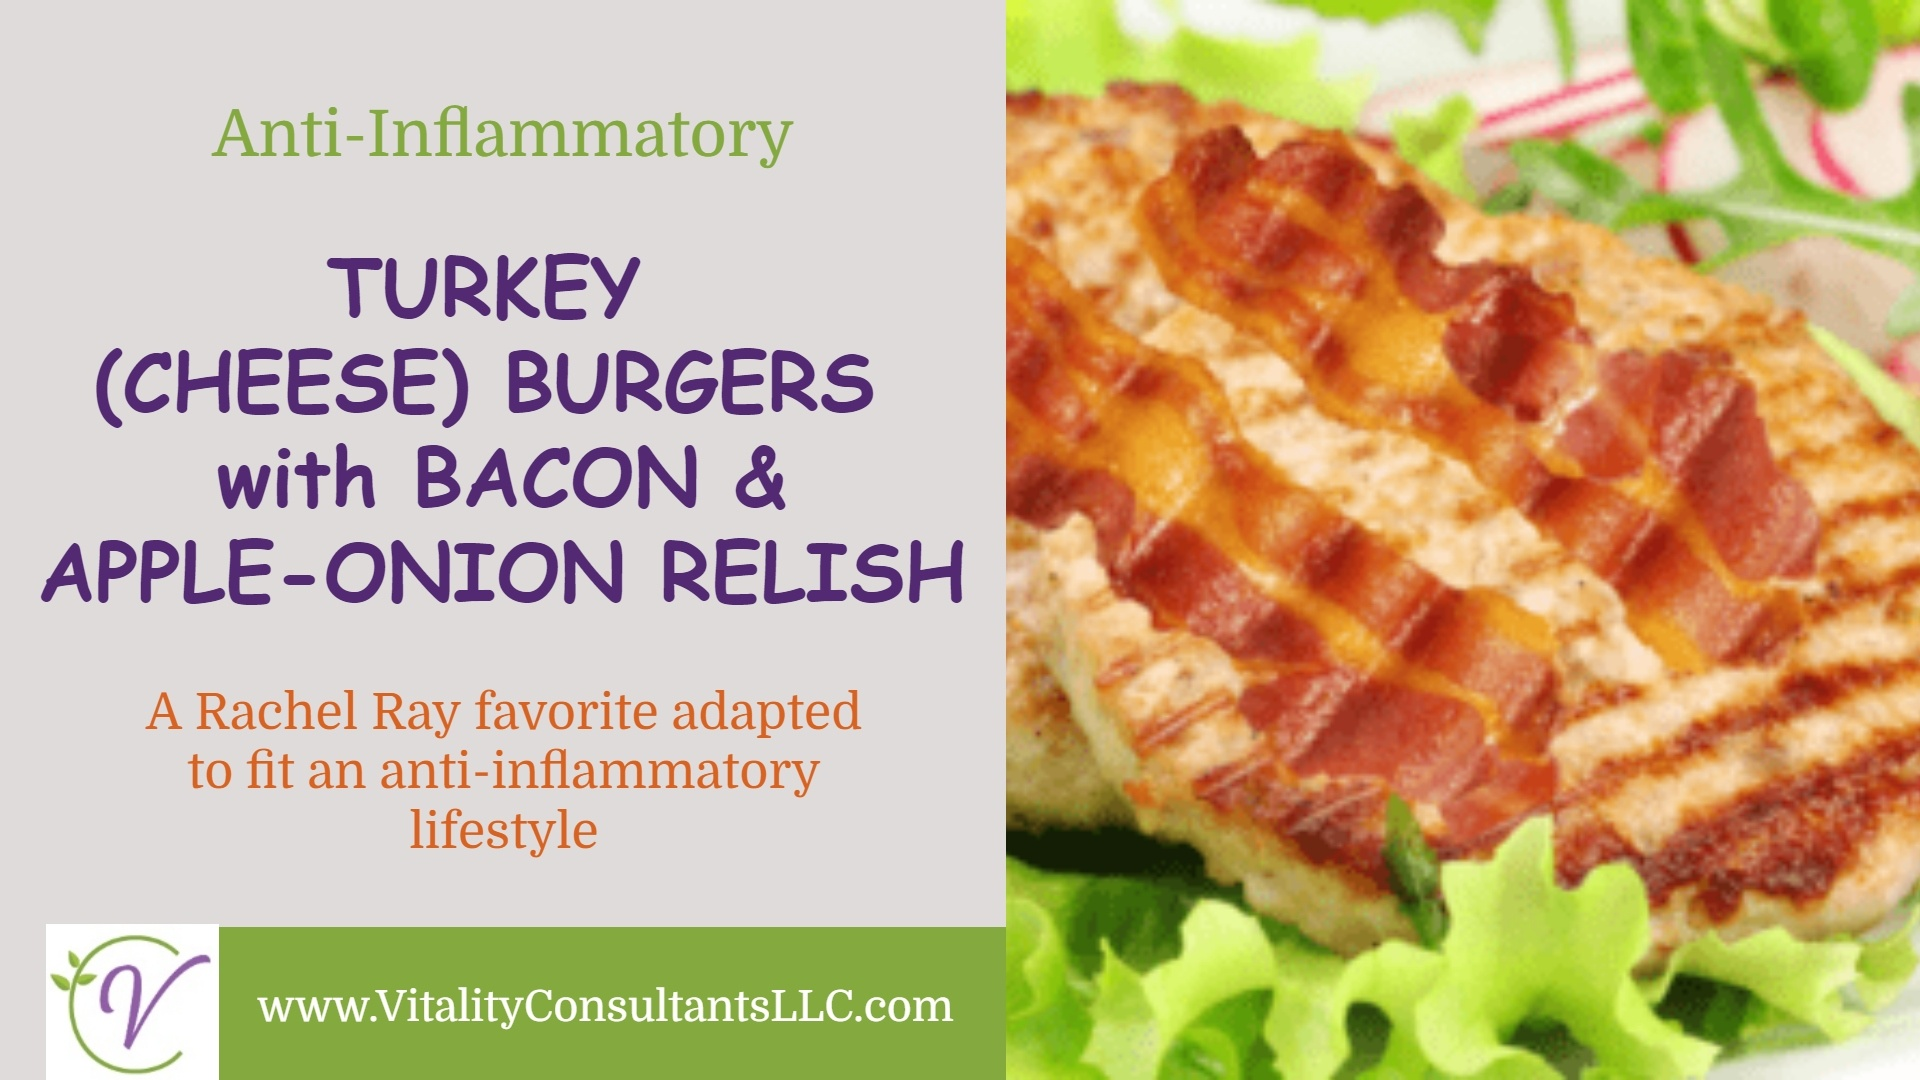 Turkey Burgers with Bacon